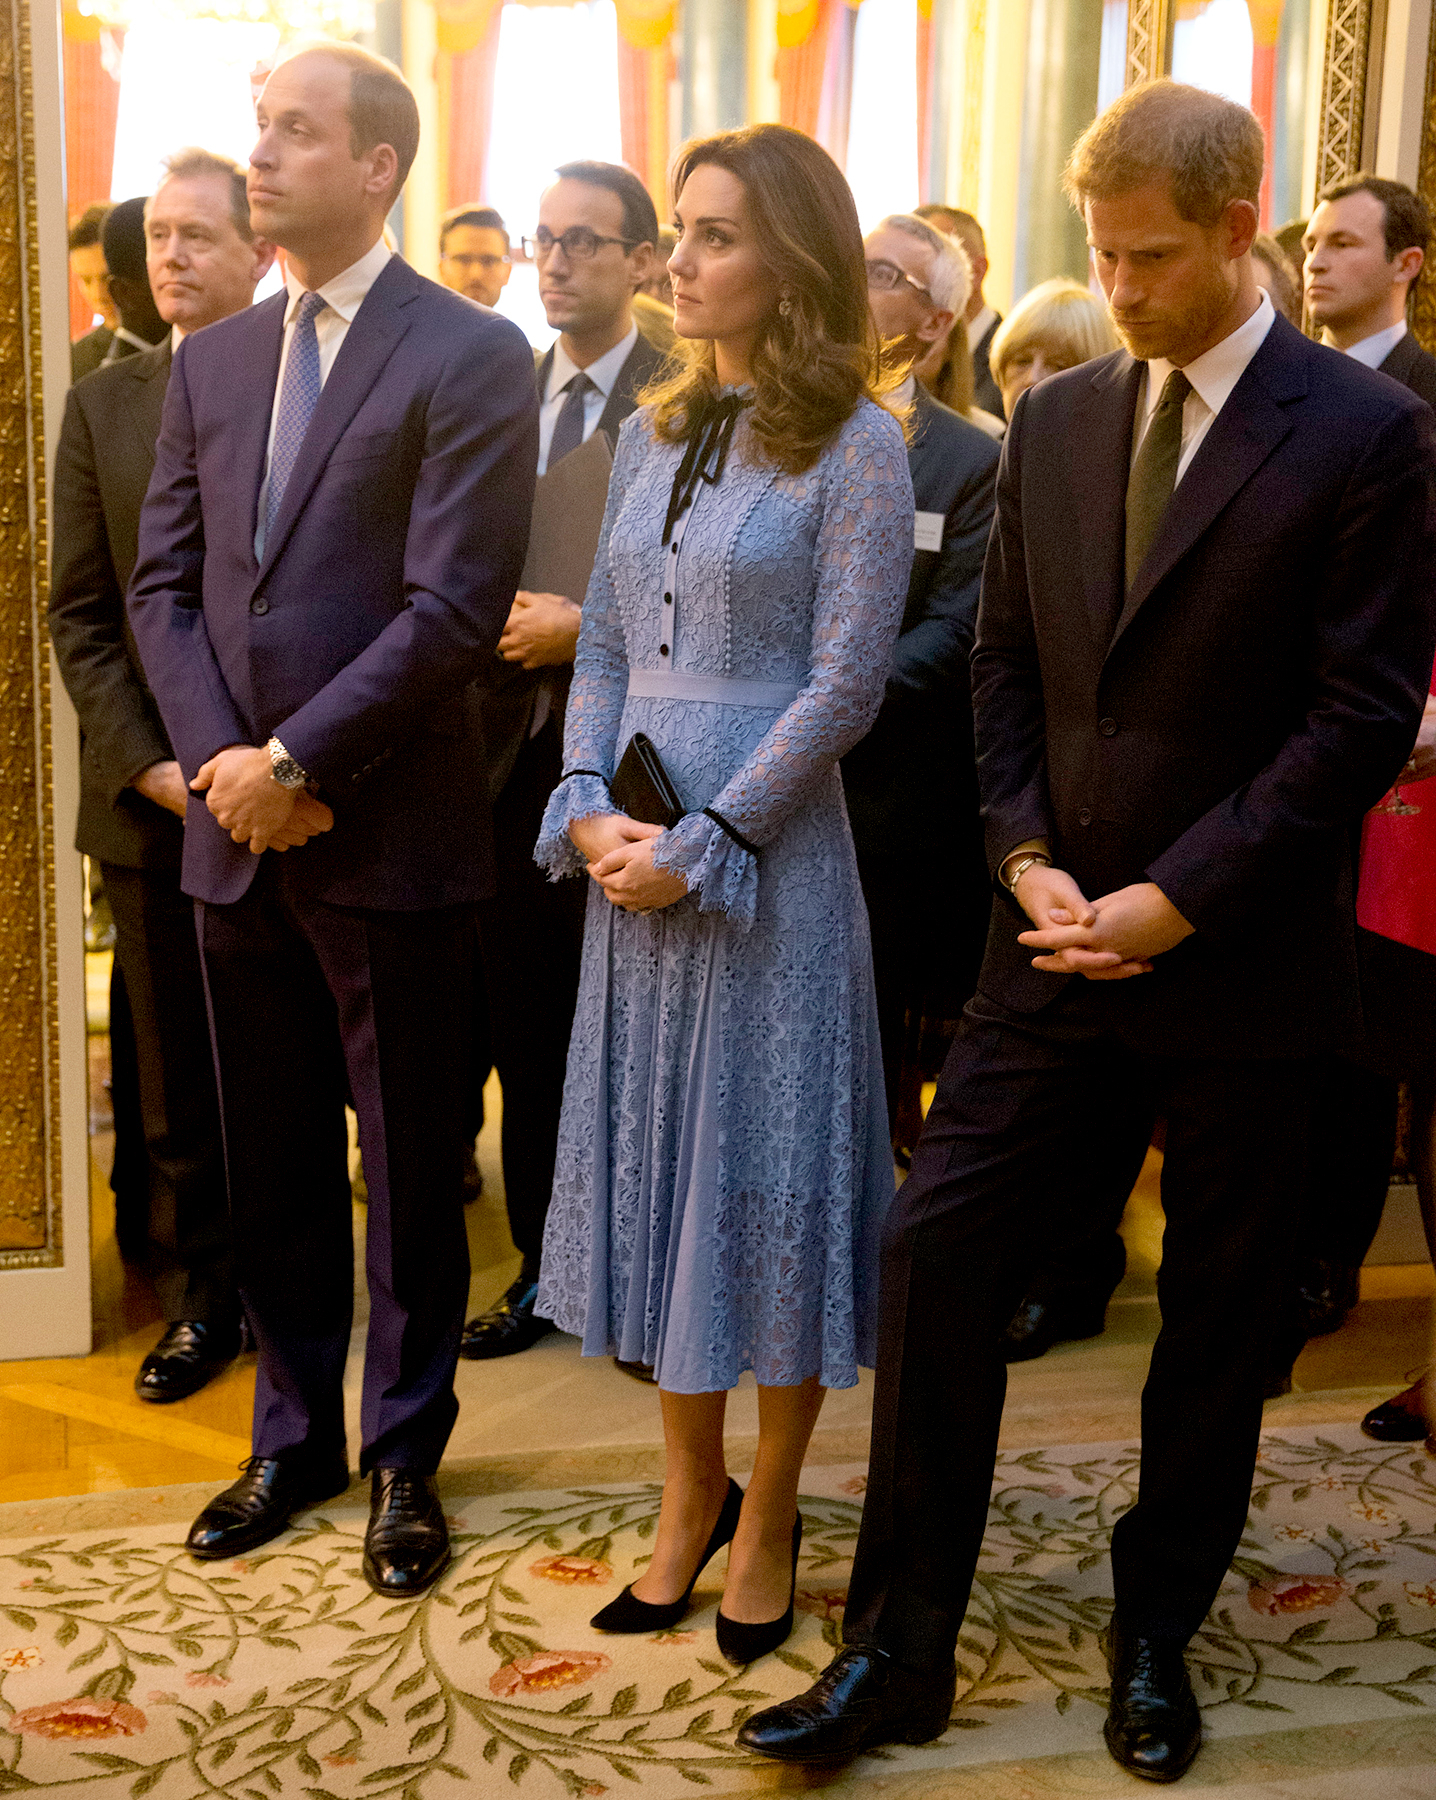 Prince William, Duke of Cambridge and Catherine, Duchess of Cambridge and Prince Harry attend a reception on World Mental Health Day to celebrate the contribution of those working in the mental health sector across the UK at Buckingham Palace on October 10, 2017 in London, England.